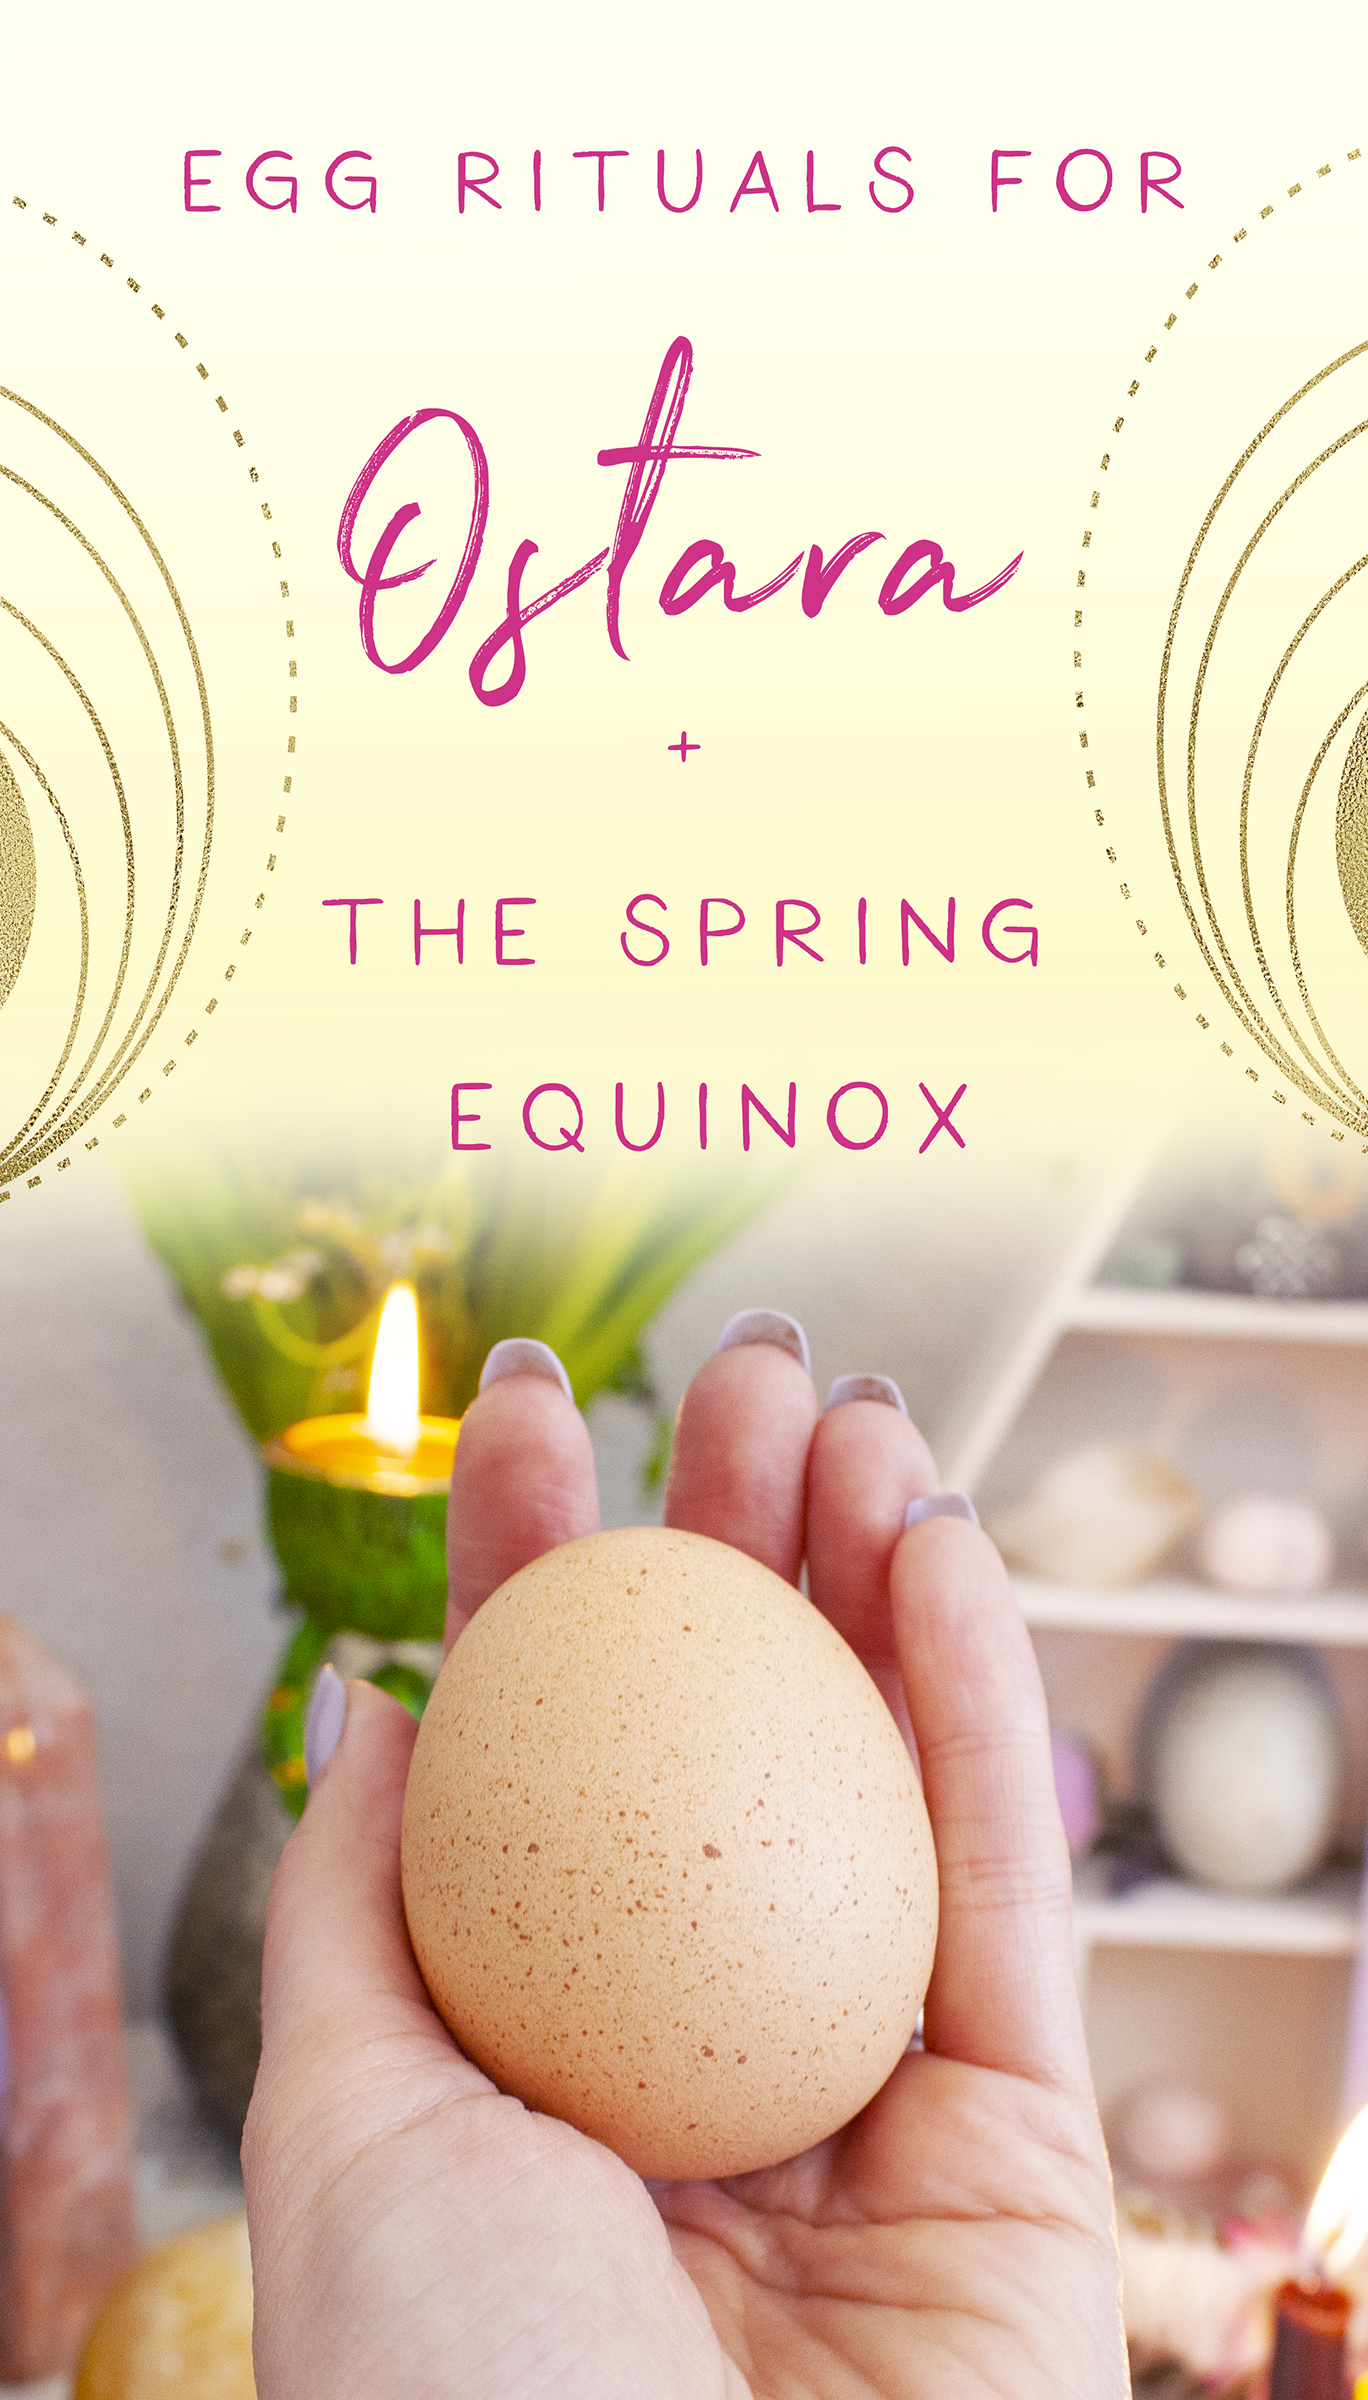 egg rituals for ostara and the spring equinox